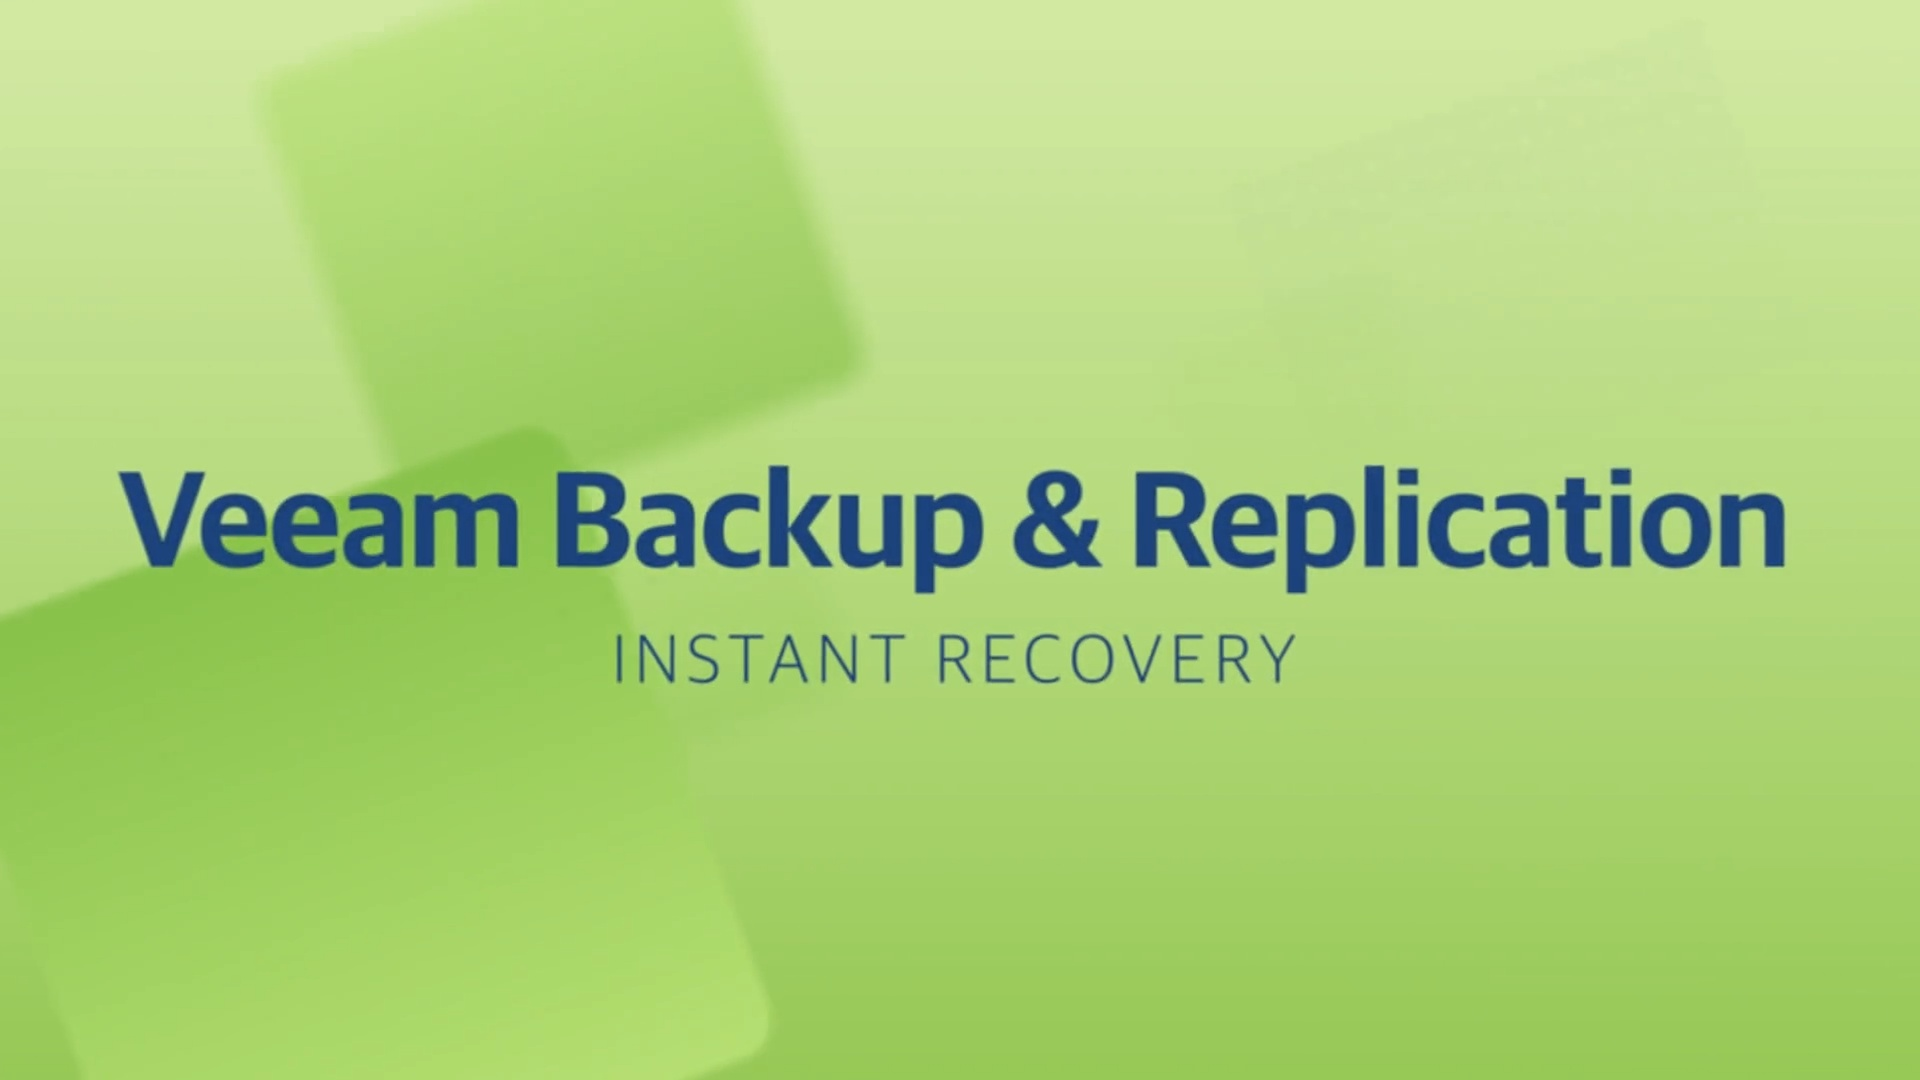 Product launch v11 - VBR - Instant Recovery